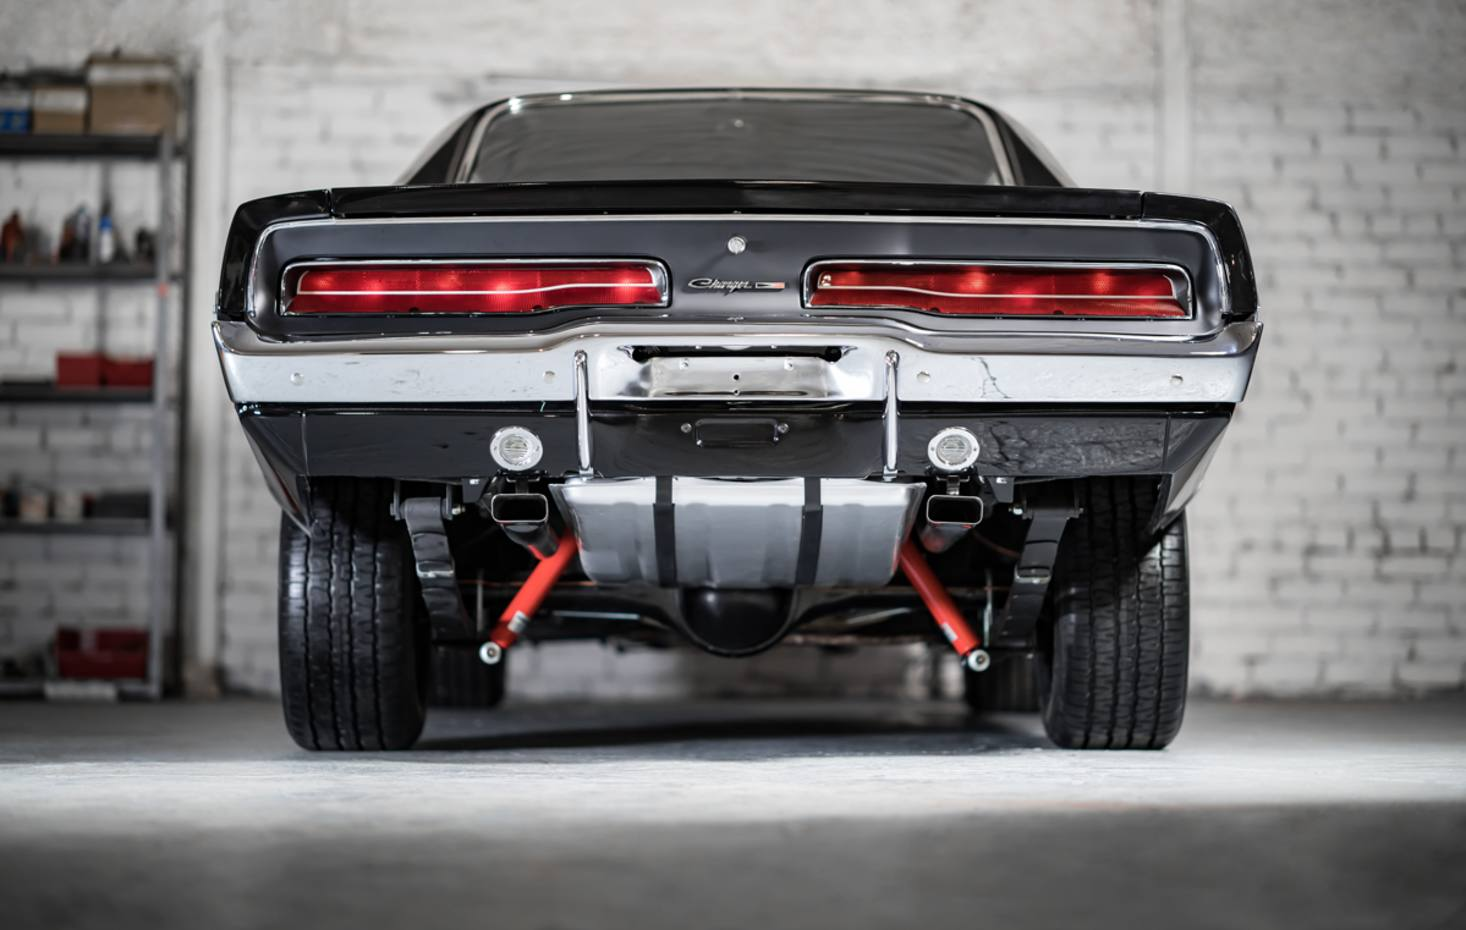 This restored Dodge Charger is almost identical to the muscle machine that co-starred in the 1968 Steve McQueen detective thriller Bullitt